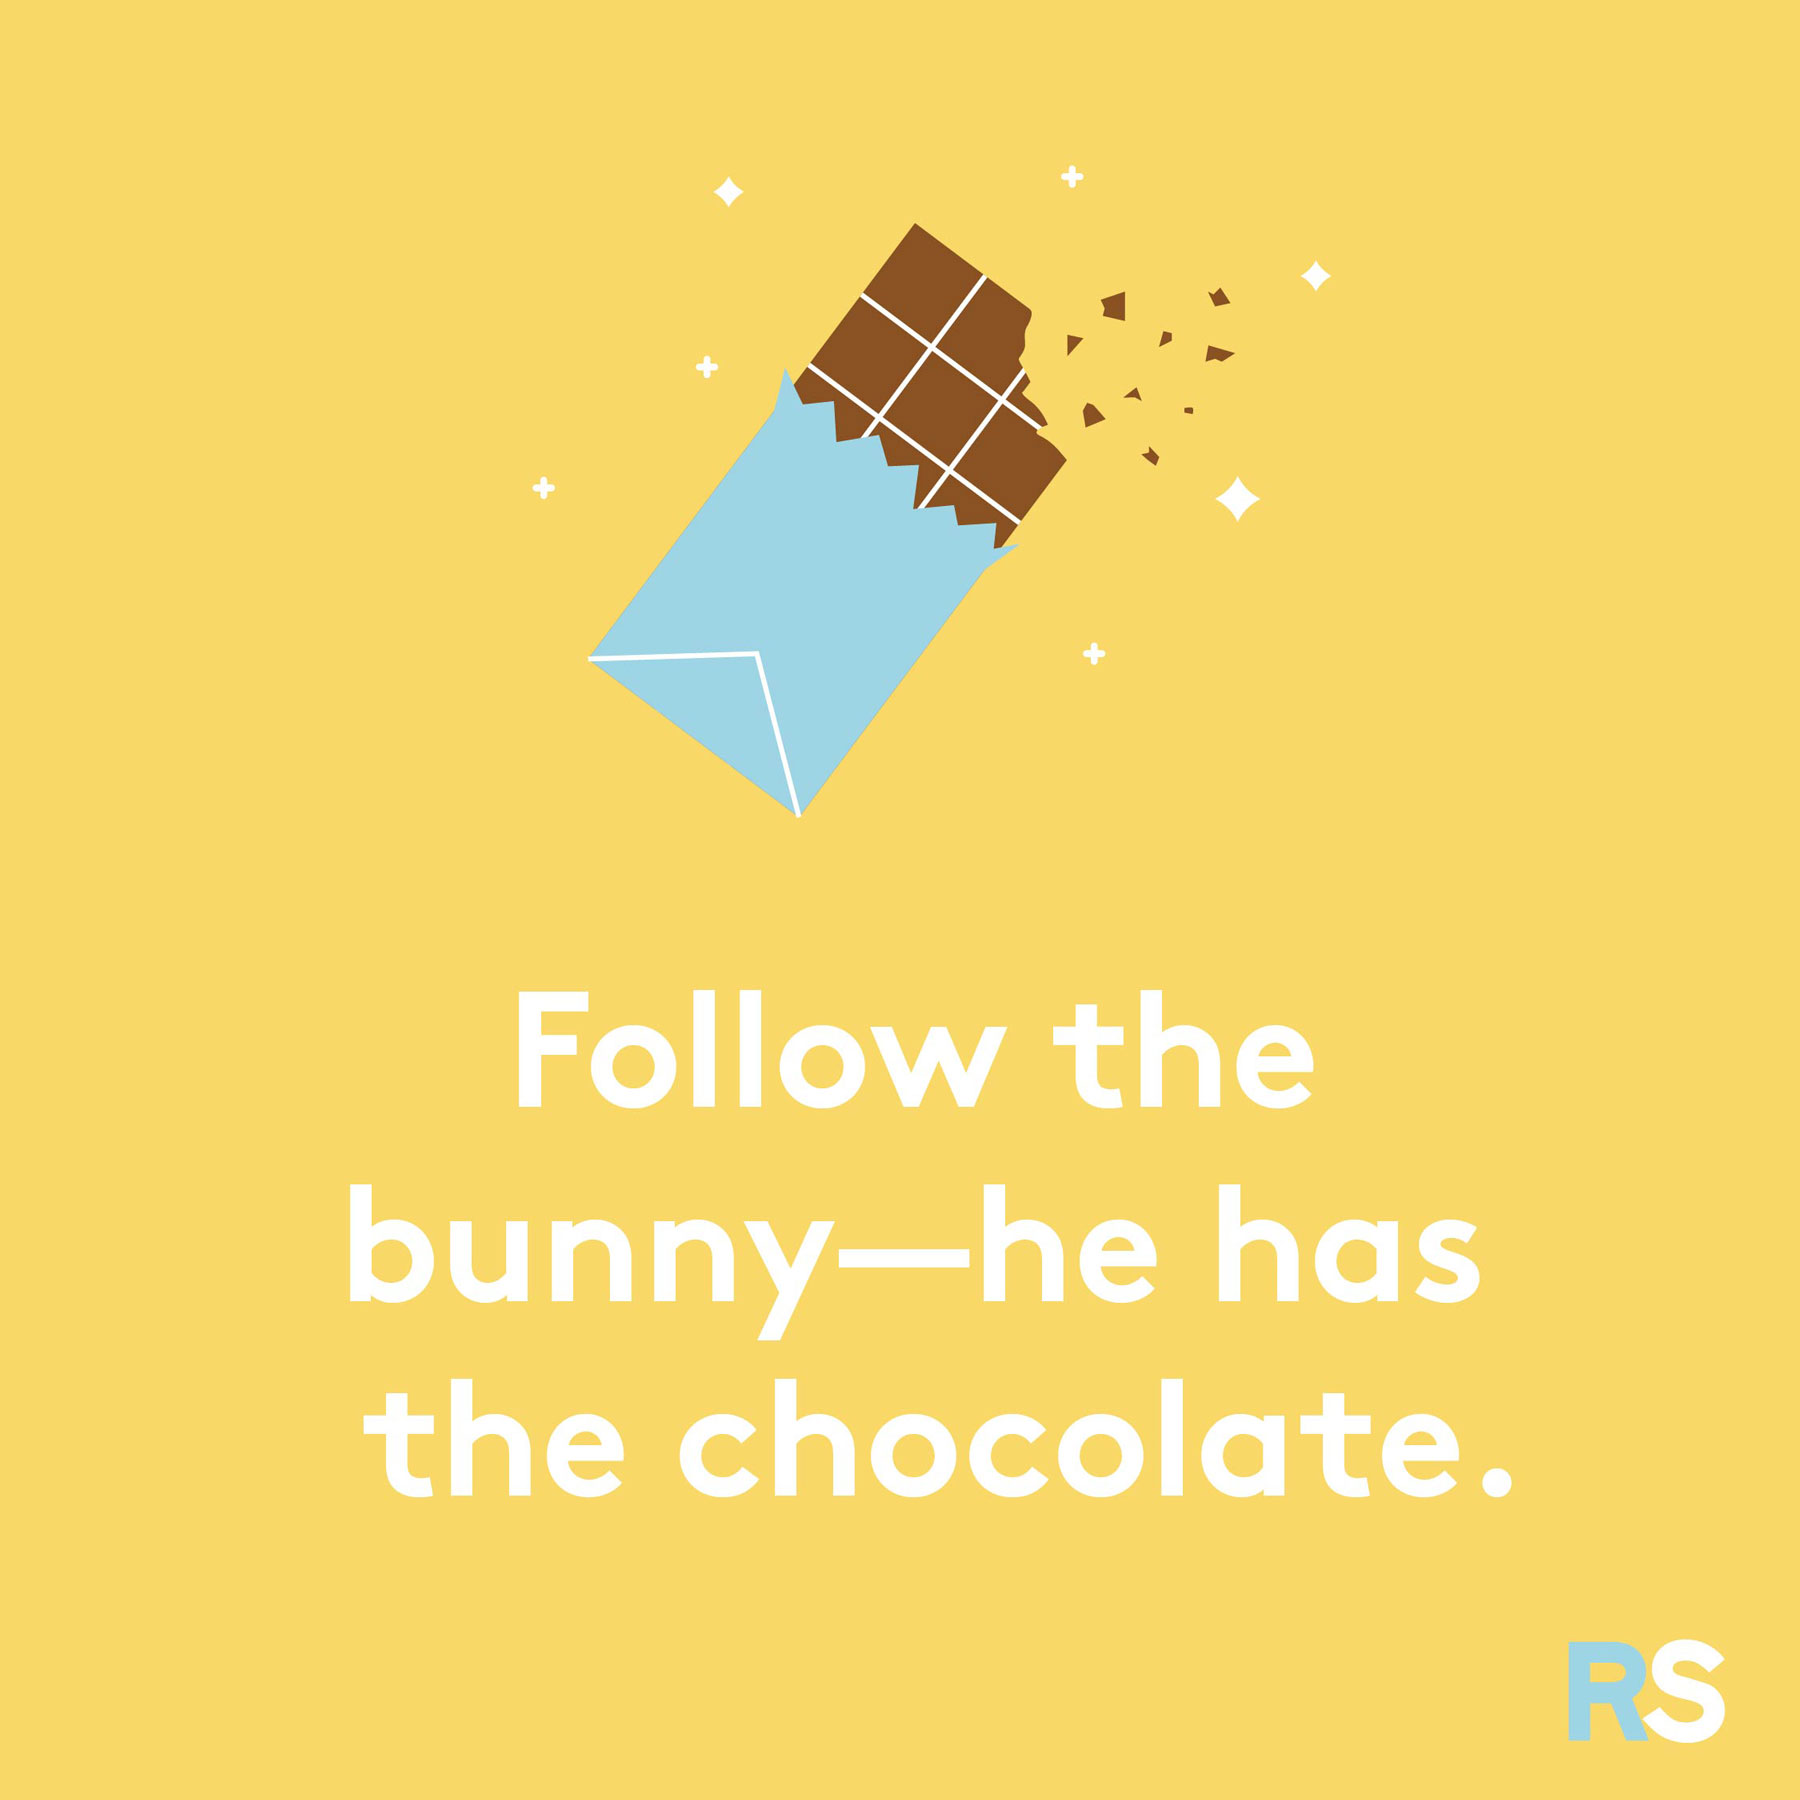 Easter quotes, captions, and messages - Follow the bunny—he has the chocolate.